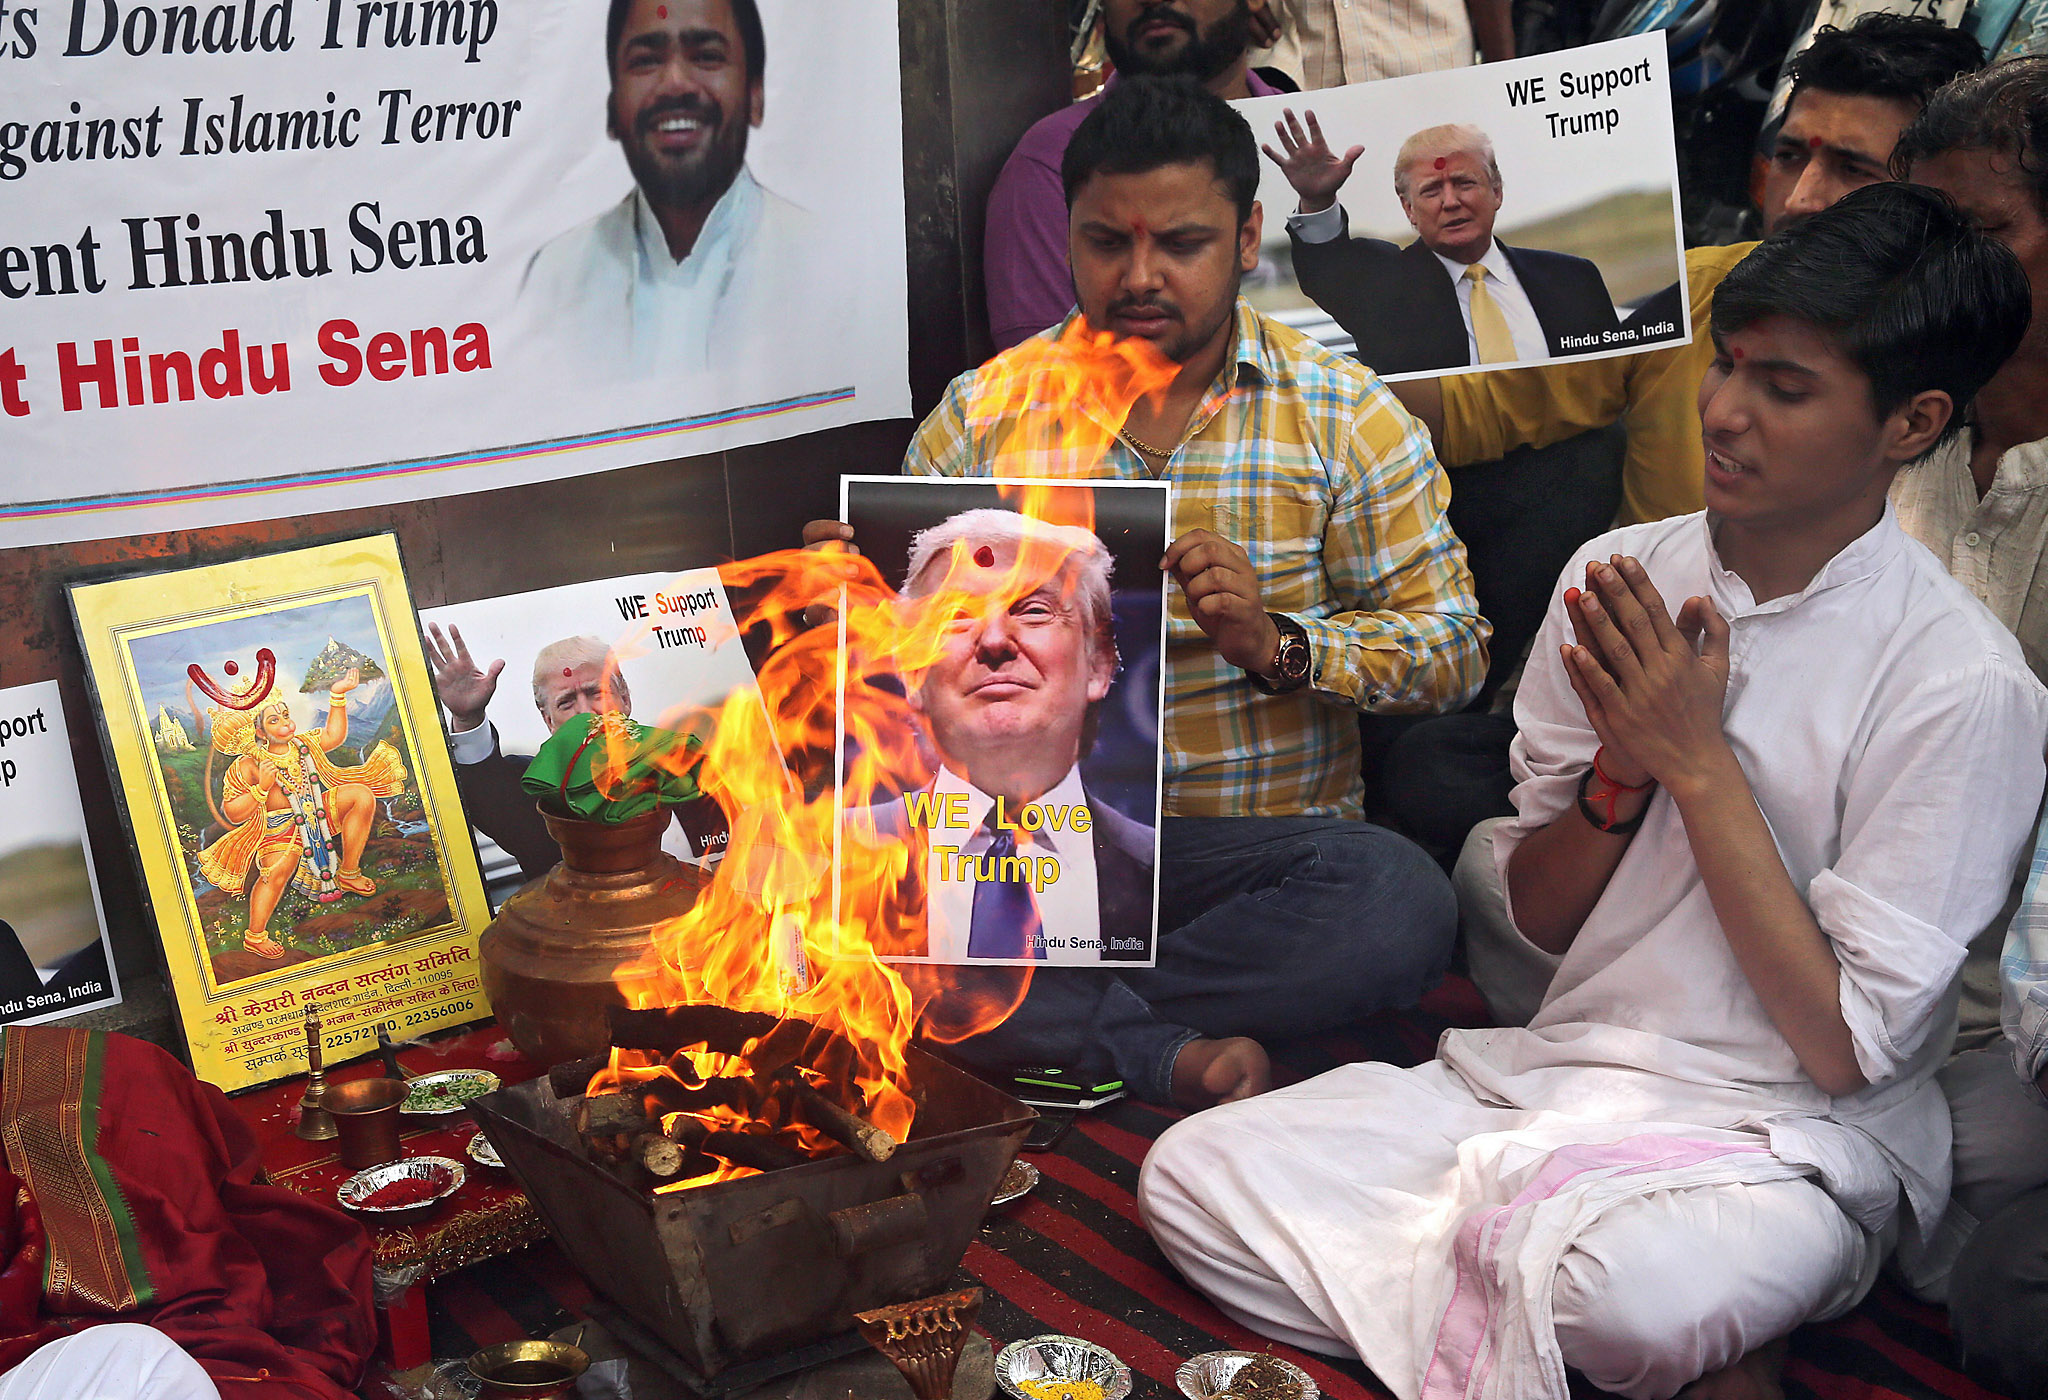 Right-wing organisation Hindu Sena perform Hindu fire rituals in support of Donald Trump in New Delhi...epa05298860 Indian activists from the right-wing organisation Hindu Sena perform Hindu fire rituals in support of US Republicans presidential candidate Donald Trump in New Delhi, India, 11 May 2016. Right-wing organisation Hindu Sena activists prayed to the Hindu gods and performed rituals to ensure the victory of Donald Trump in US Presidential elections and urged the Indian origin people living in USA to vote and support him.  EPA/RAJAT GUPTA